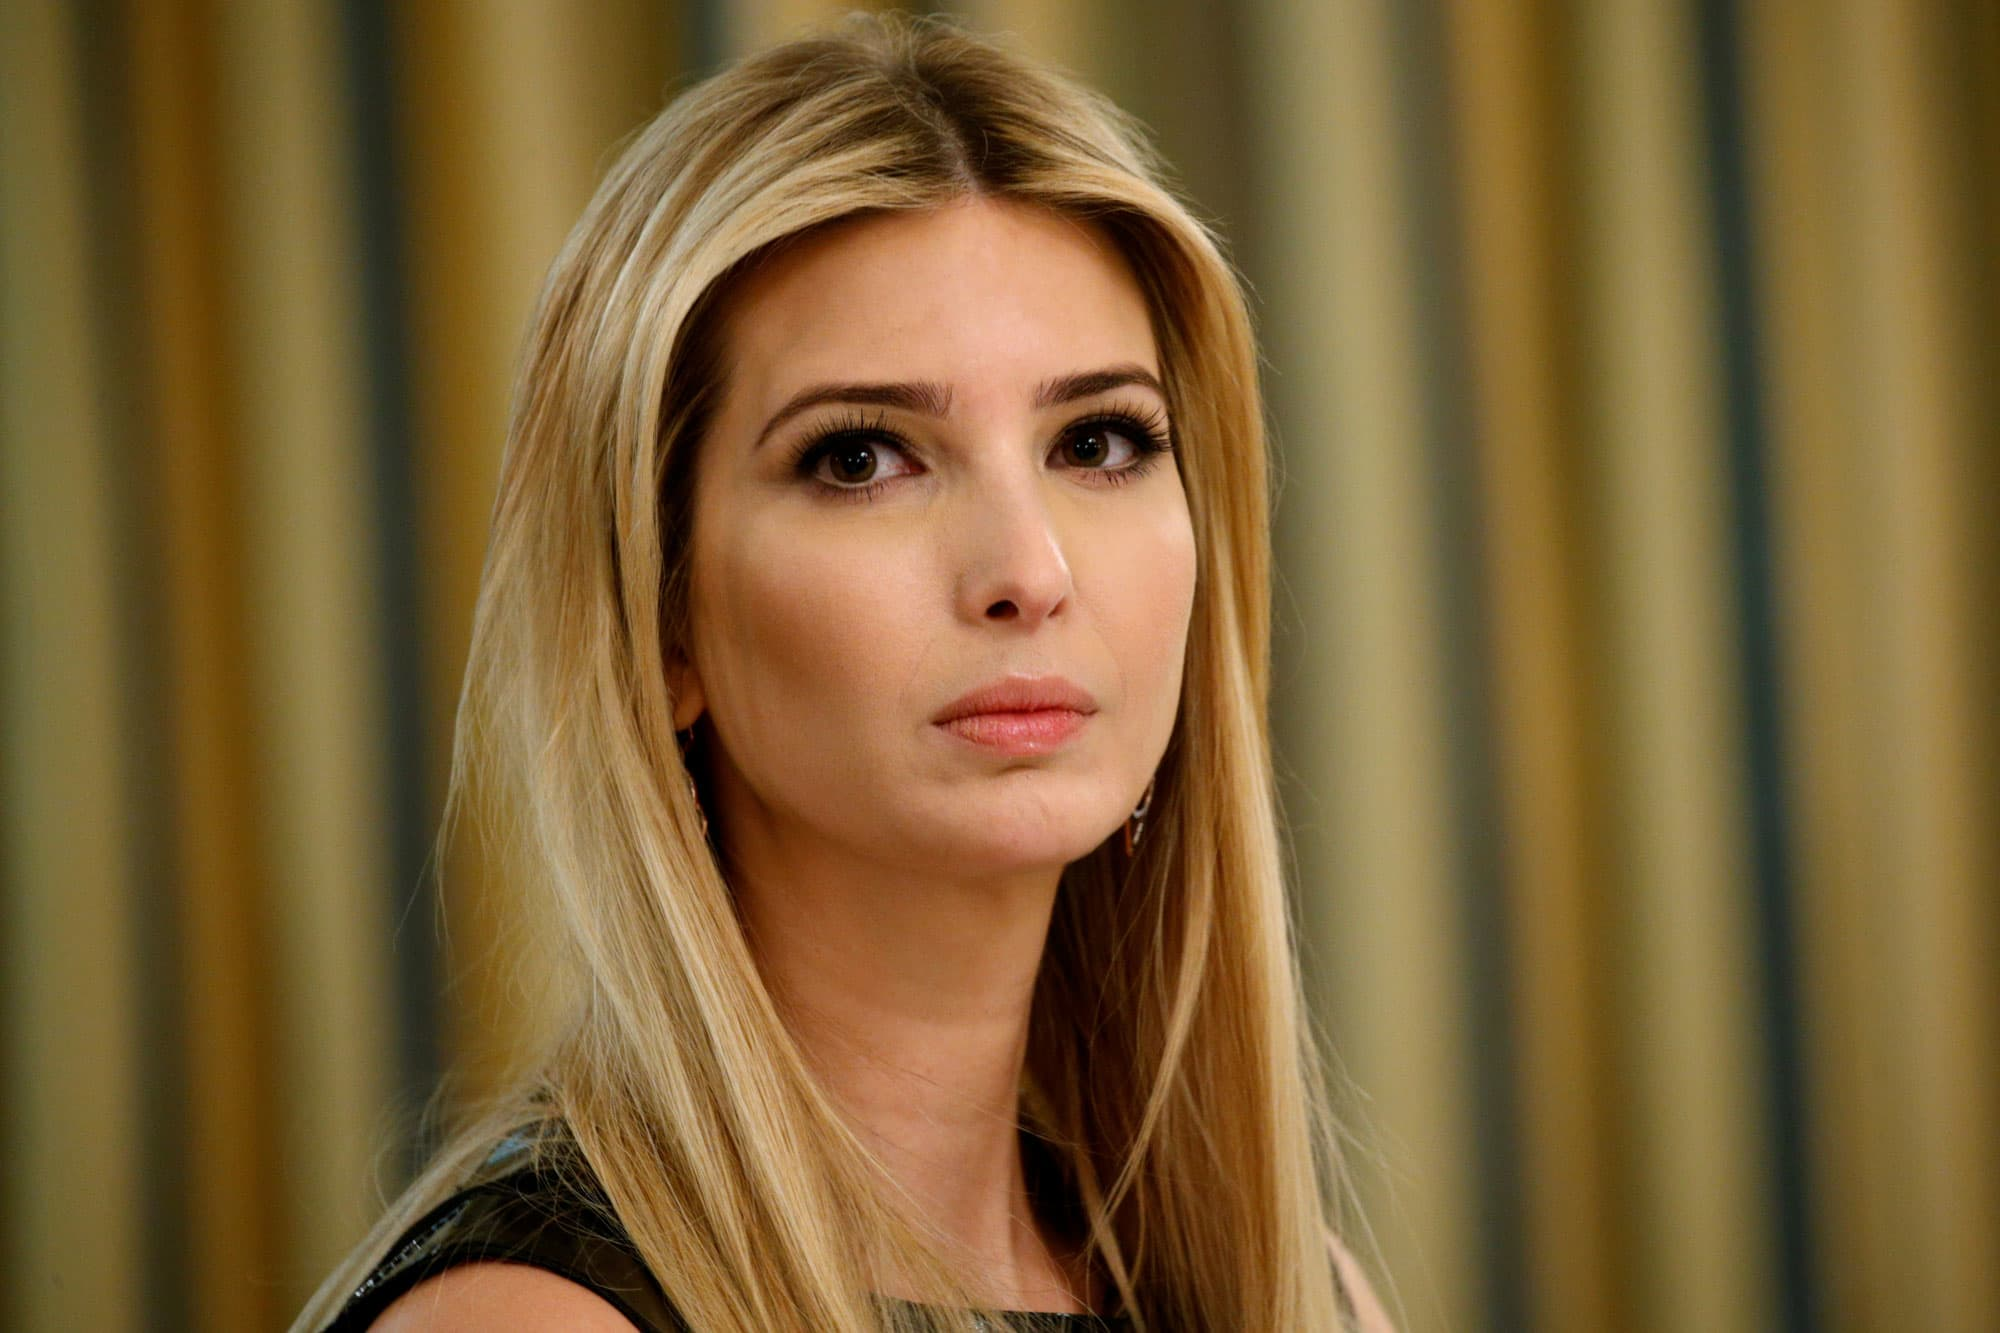 Trump family member — possibly Ivanka — had 'personal' relationship with dossier author Steele